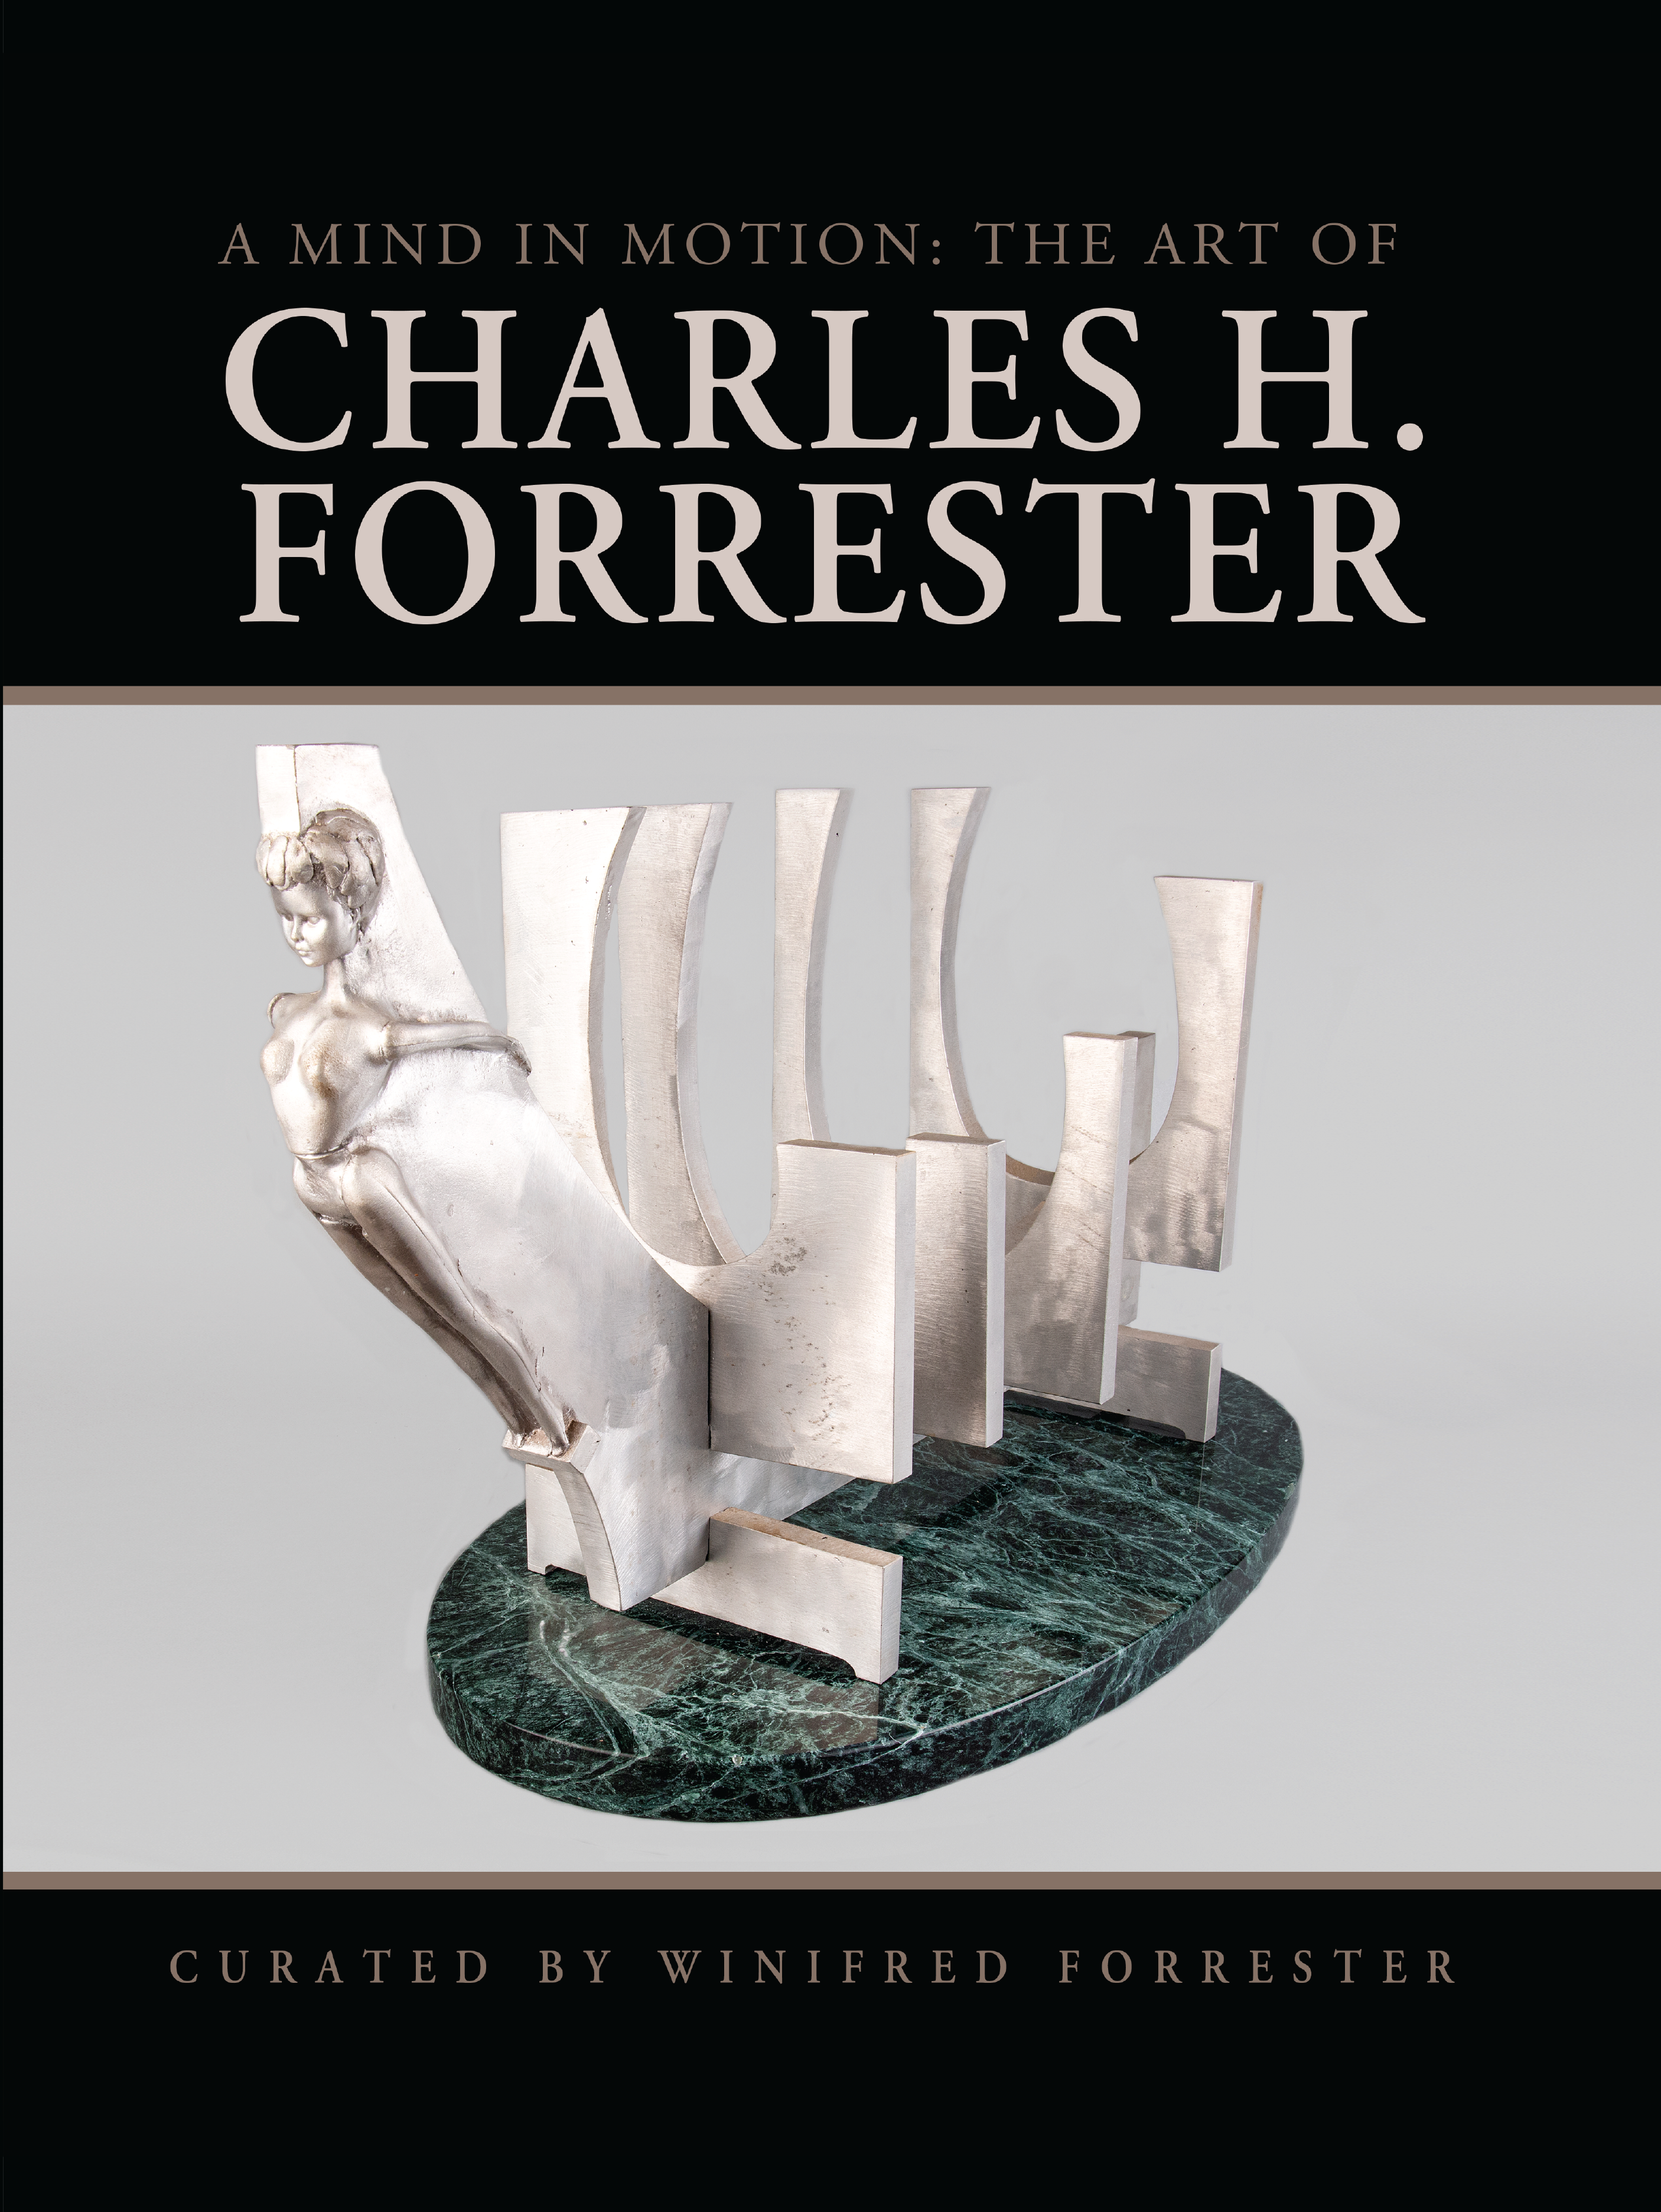 Review: A Line Unbroken: The Charles Forrester Story